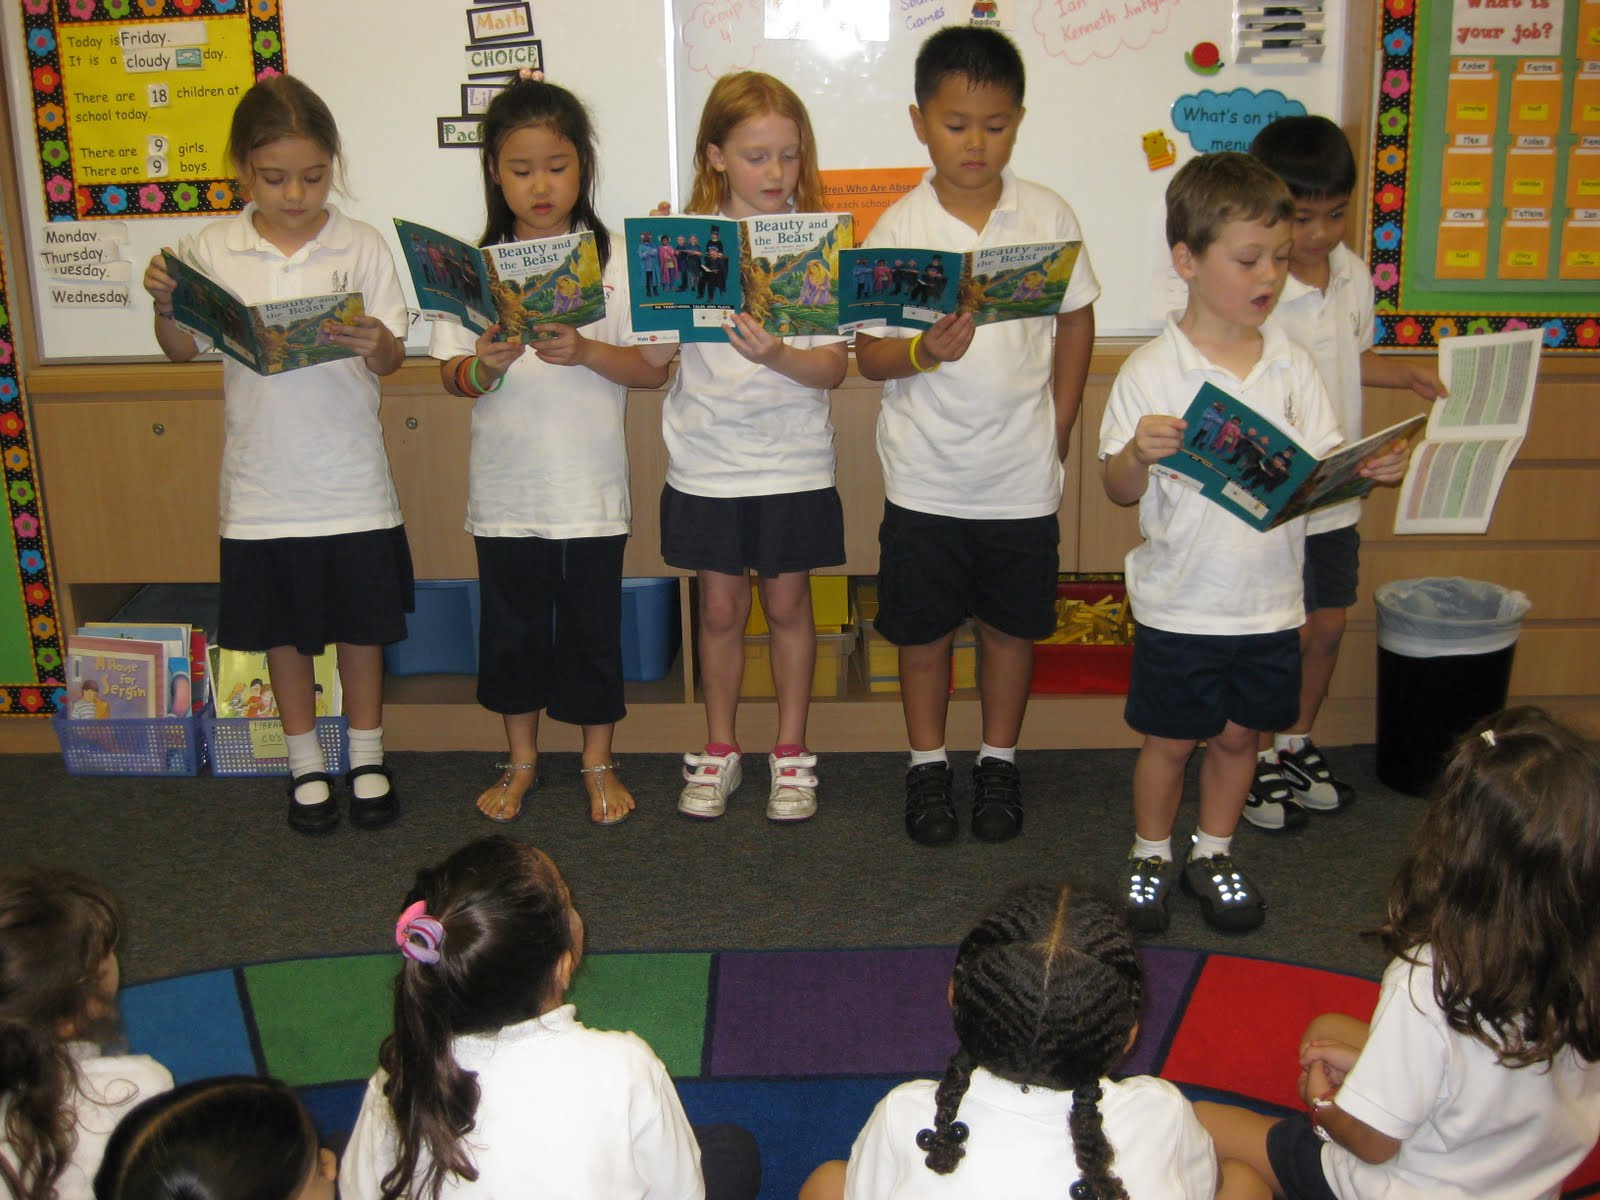 Reader's Theatre is a wonderful way to improve reading skills and understand literature.